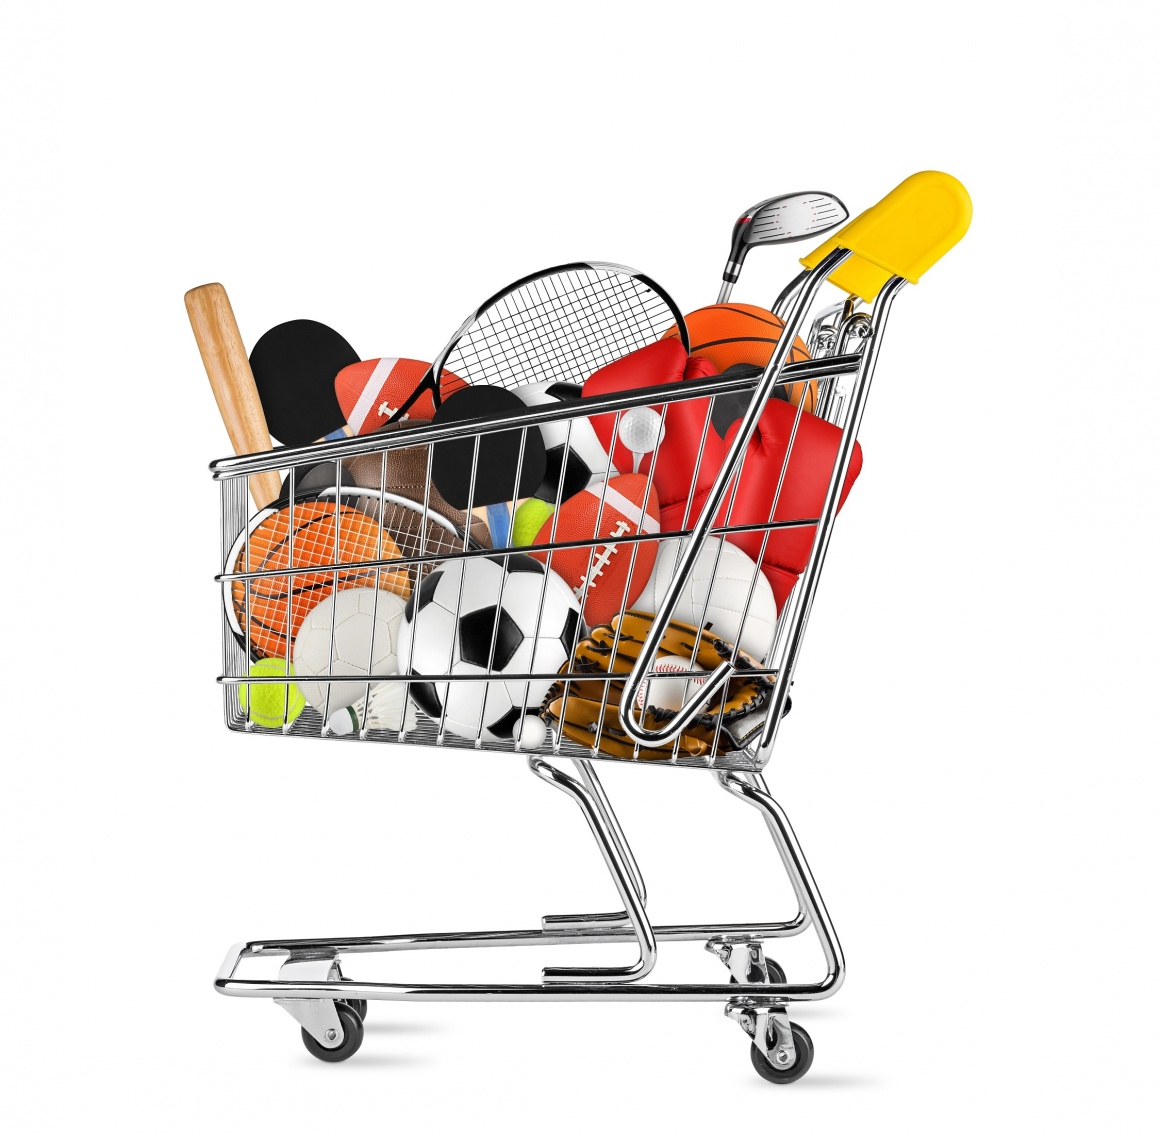 A filled shopping trolley on a white background